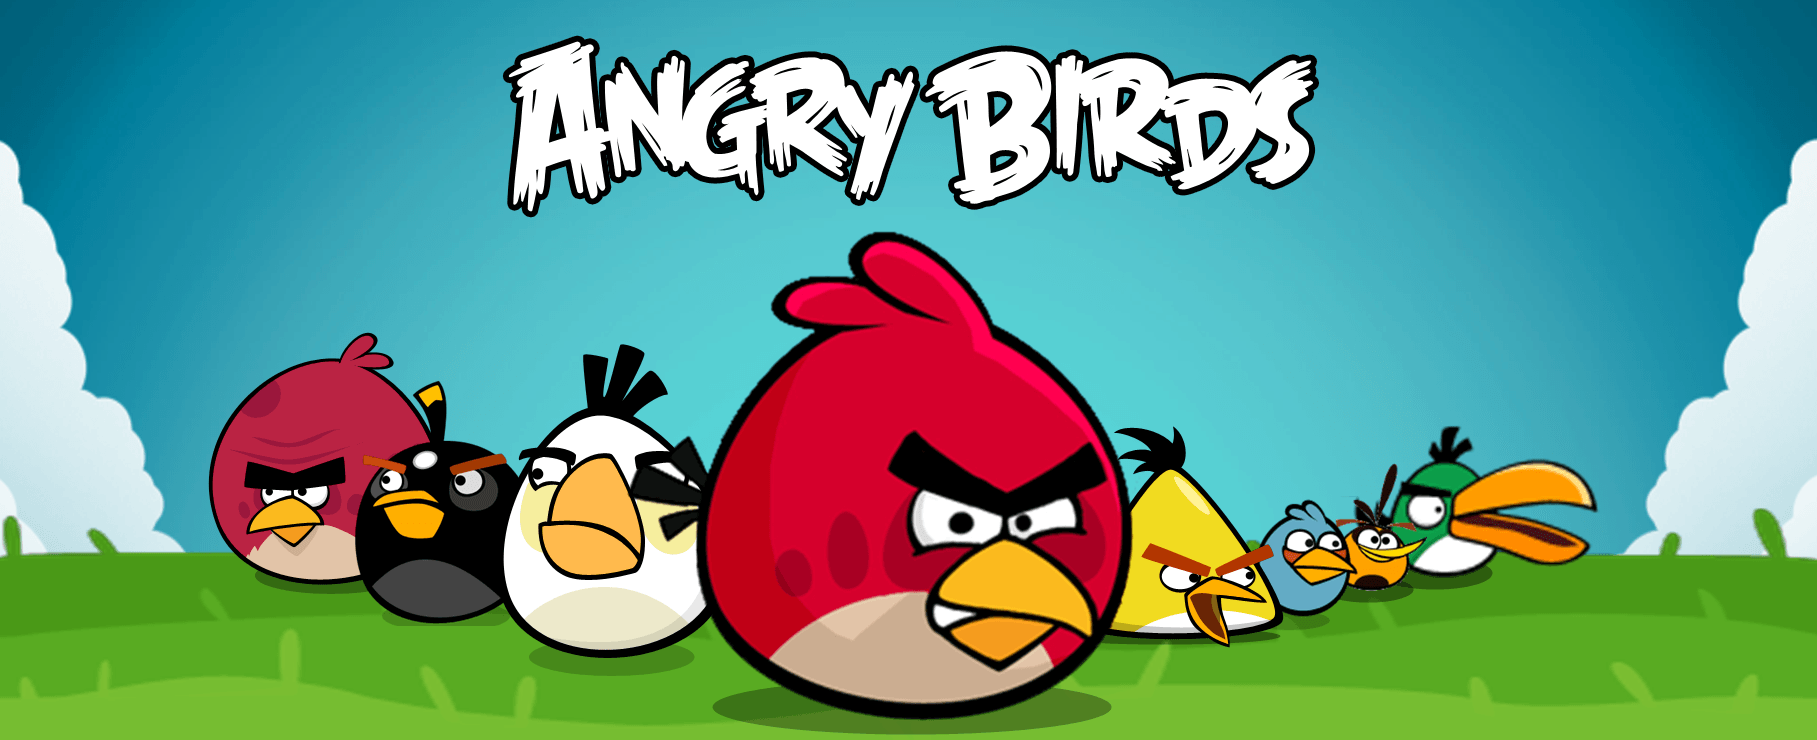 Image - Angry birds wallpaper 3.png - Angry Birds Wiki